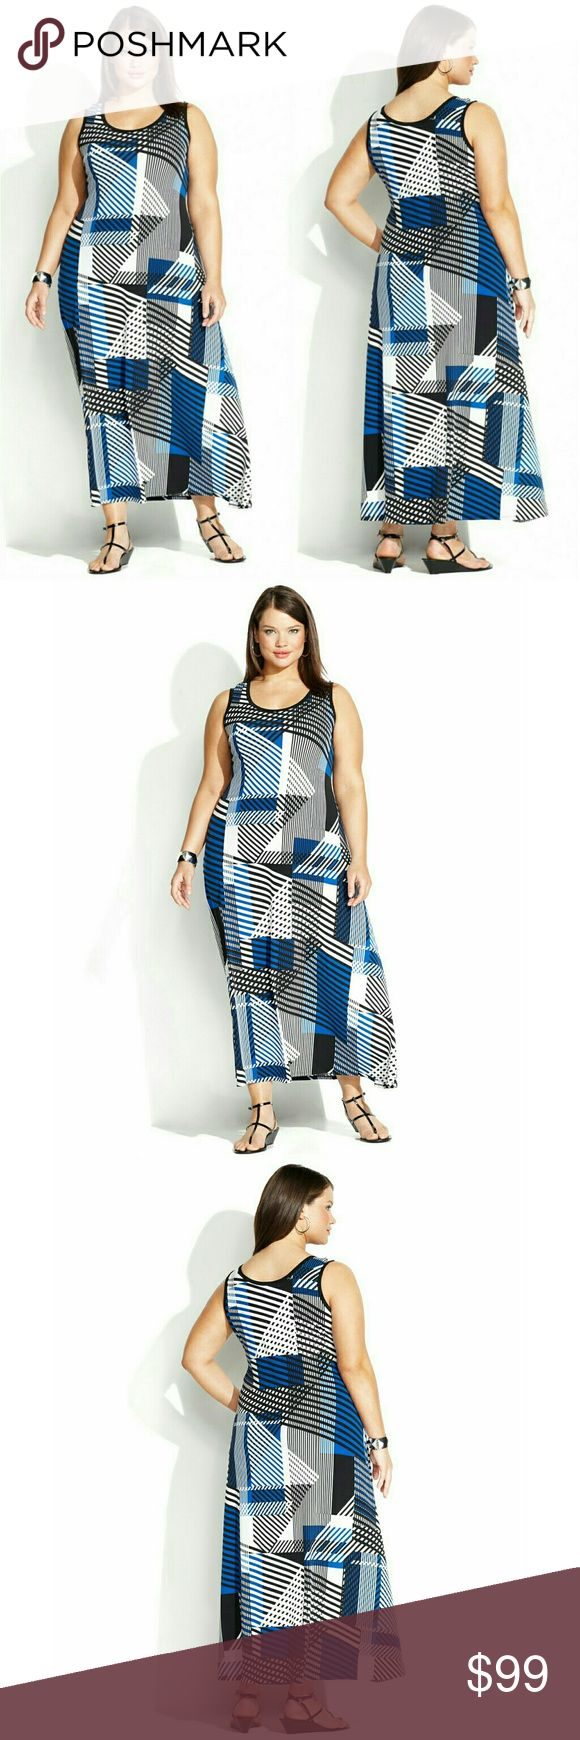 New! Calvin Klein Geometric Plus Size Maxi Dress Indulge your passion for prints with Calvin Klein's striped plus size maxi dress! The elegant print make this a total wardrobe must-have.  Brand New With Tags   Geometric printed allover  Scoop neckline  Jersey fabric - moves with the body  Pullover styling  A-Line maxi silhouette  Hits at ankle  Polyester/Spandex  Machine washable  Retails for $139.50 Calvin Klein Dresses Maxi